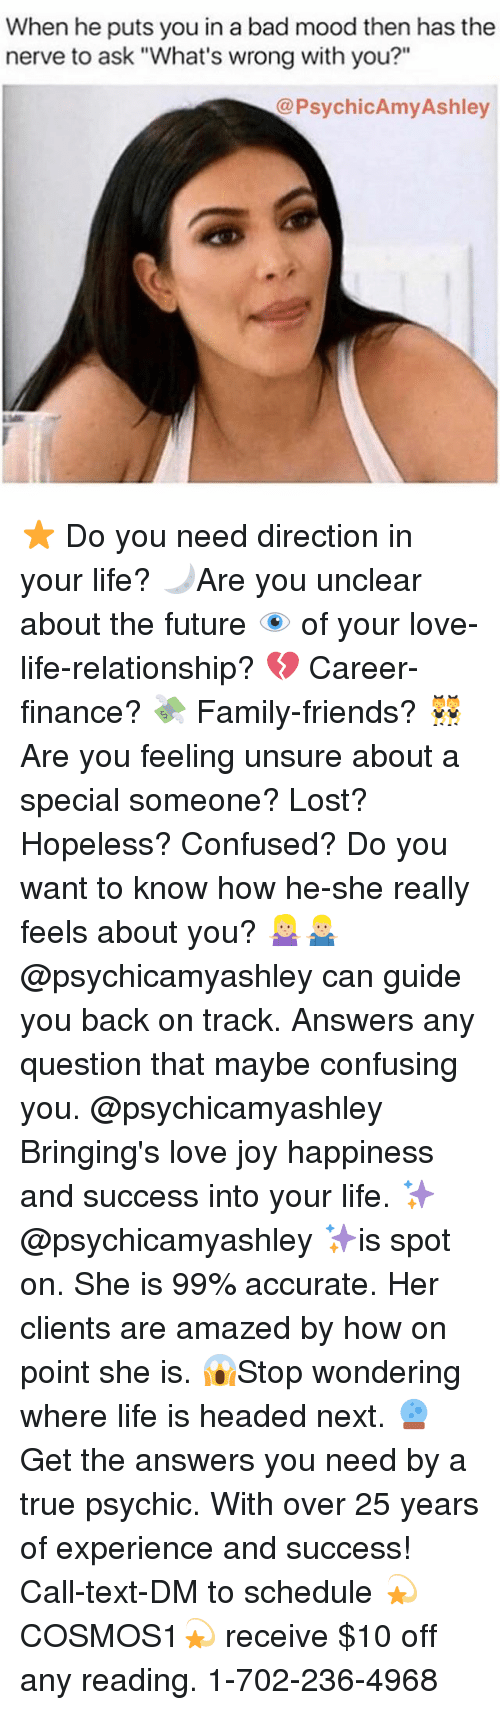 "Any Question: When he puts you in a bad mood then has the  nerve to ask ""What's wrong with you?""  @PsychicAmy Ashley ⭐️ Do you need direction in your life? 🌙Are you unclear about the future 👁 of your love-life-relationship? 💔 Career-finance? 💸 Family-friends? 👯 Are you feeling unsure about a special someone? Lost? Hopeless? Confused? Do you want to know how he-she really feels about you? 🤷🏼‍♀️🤷🏼‍♂️@psychicamyashley can guide you back on track. Answers any question that maybe confusing you. @psychicamyashley Bringing's love joy happiness and success into your life. ✨@psychicamyashley ✨is spot on. She is 99% accurate. Her clients are amazed by how on point she is. 😱Stop wondering where life is headed next. 🔮 Get the answers you need by a true psychic. With over 25 years of experience and success! Call-text-DM to schedule 💫COSMOS1💫 receive $10 off any reading. 1-702-236-4968"